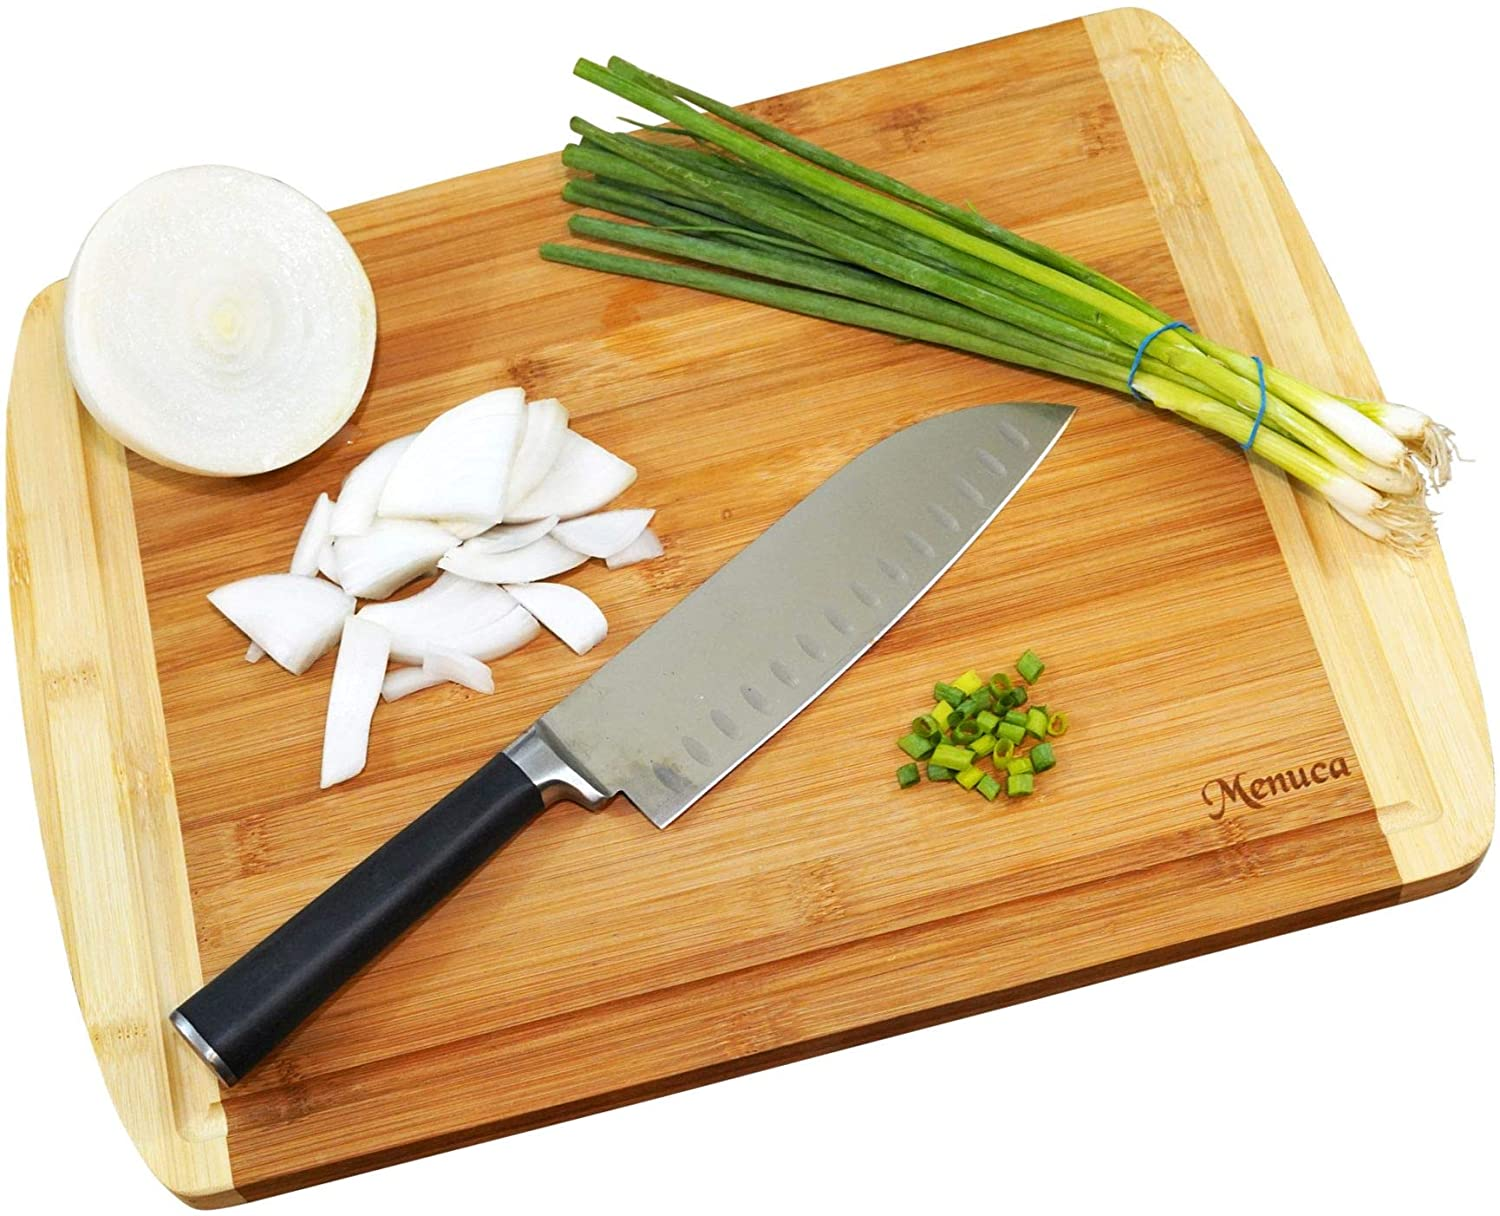 Cutting Boards: Organic Bamboo Cutting Board with Juice Grooves - Thick, Heavy Duty Wooden Butcher Block for Meat + Vegetables - Beautiful Serving Tray + Cheese Board - Ecofriendly (Large)